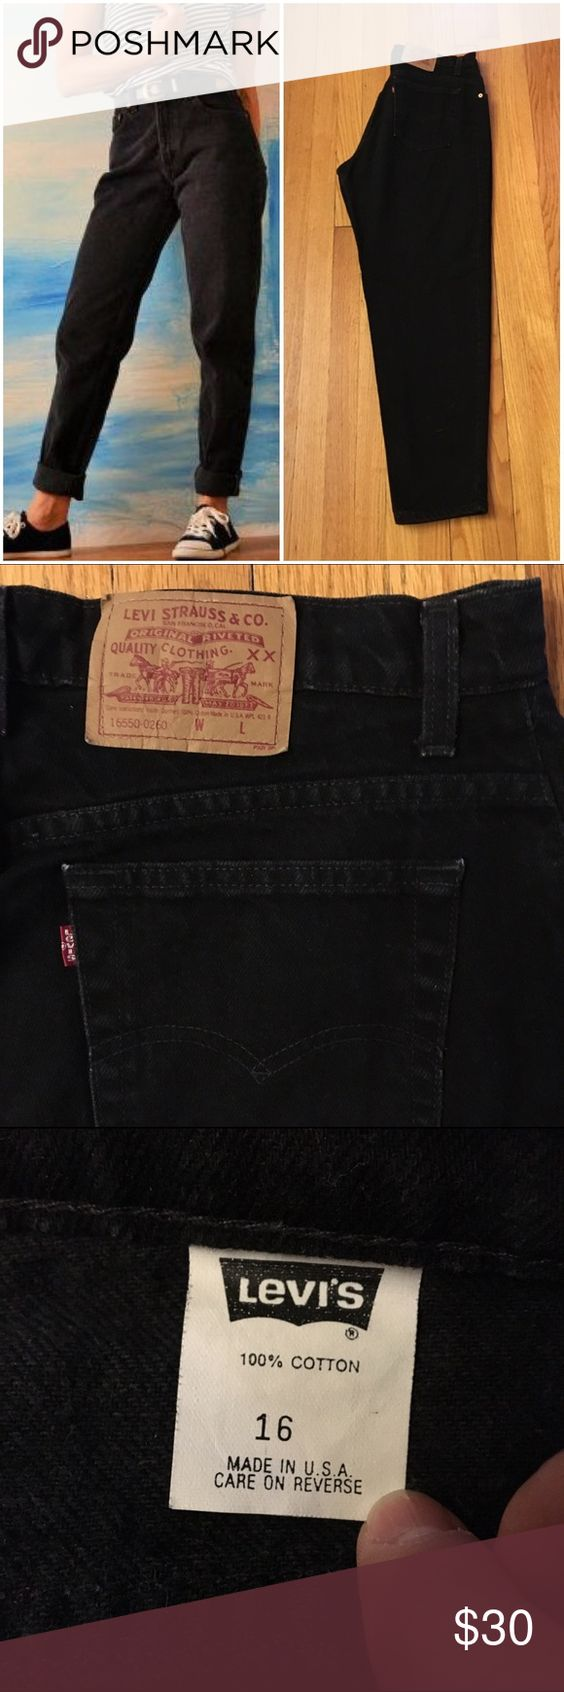 """Black Vintage Levi's Jeans Black high-waisted vintage Levi's """"mom jeans"""" Size/Fit Marked: 16 Size BEST FIT: 12/32  Apx. measurements when laying flat: 16.5"""" across waistband 13"""" front rise  30"""" inseam 22"""" across bottom of back pockets Condition: excellent vintage Check out my closet for other vintage denim in a VARIETY of sizes. Left cover photo is style inspo only, rest are mine. Price is firm so bundle for a discount!! Levi's Jeans"""